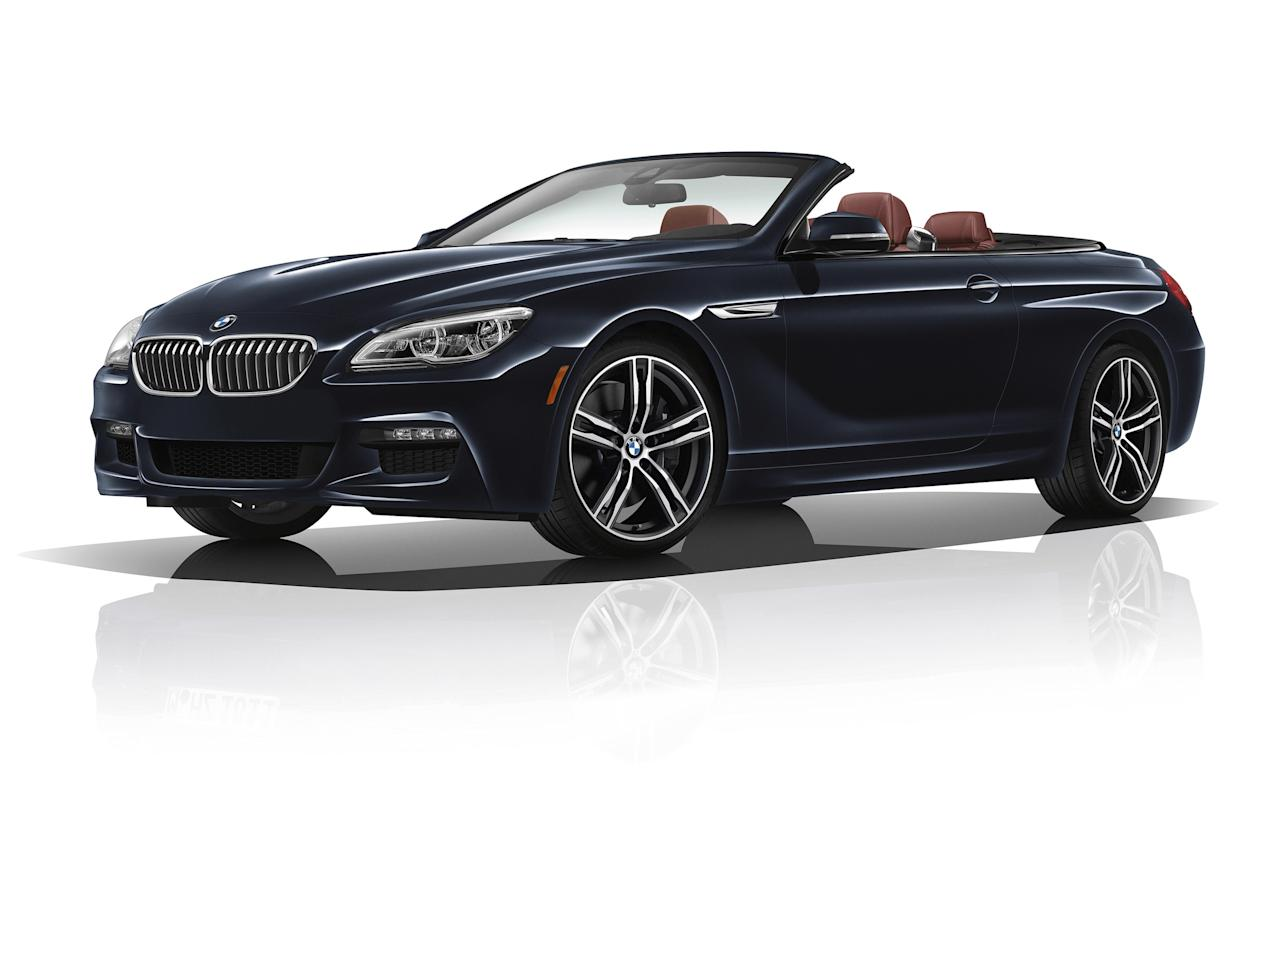 <p>With a soft-top that opens in under 20 seconds, there's always time to enjoy the sun on your face and the wind in your hair behind the wheel of BMW's latest 6 Series convertible. This Ultimate Driving Machine combines power and beauty so elegantly.</p>